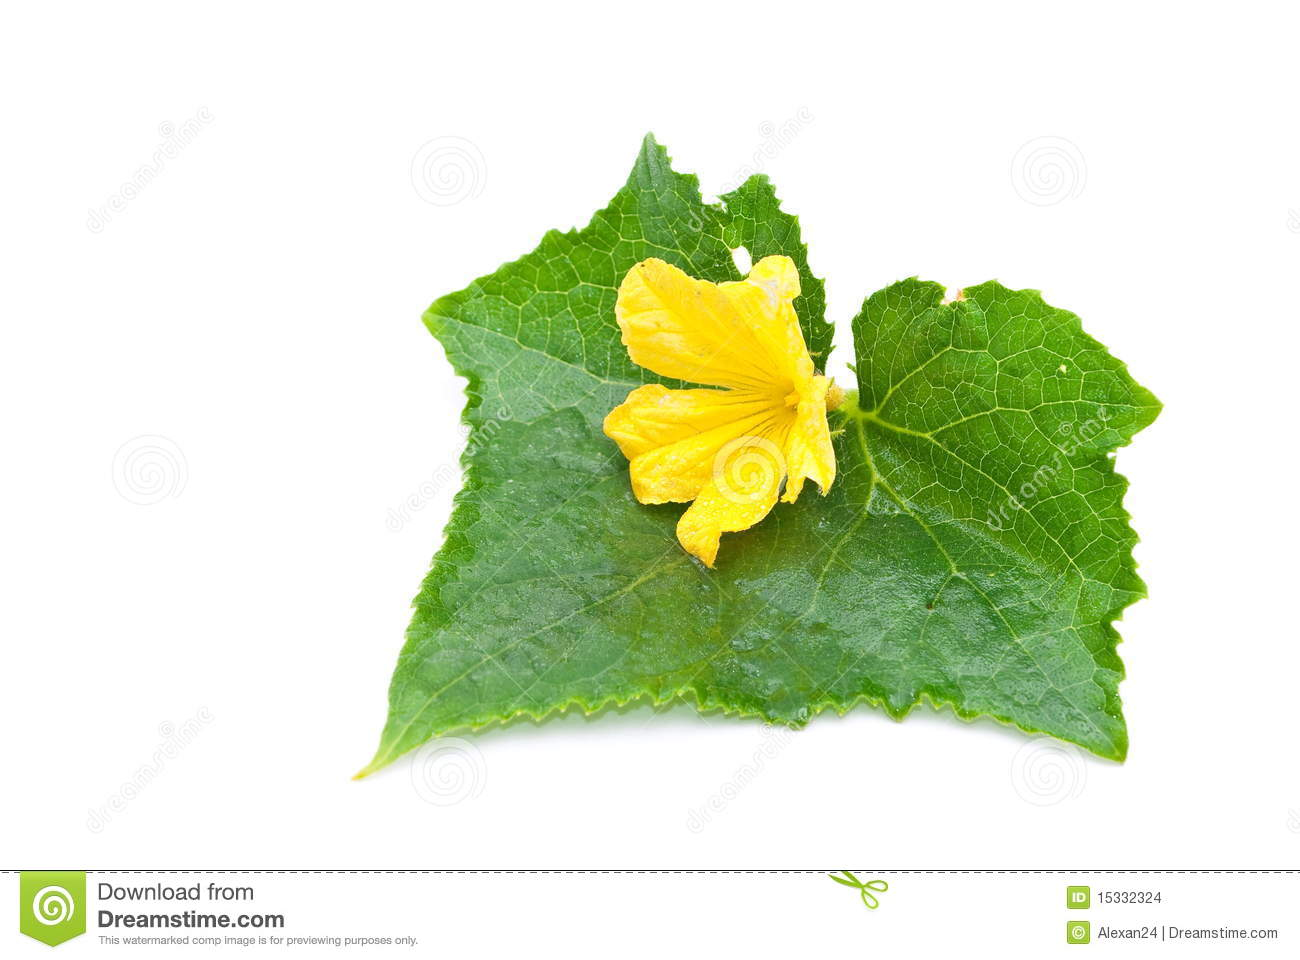 Cucumber leaf and flower stock photo. Image of plant - 15332324